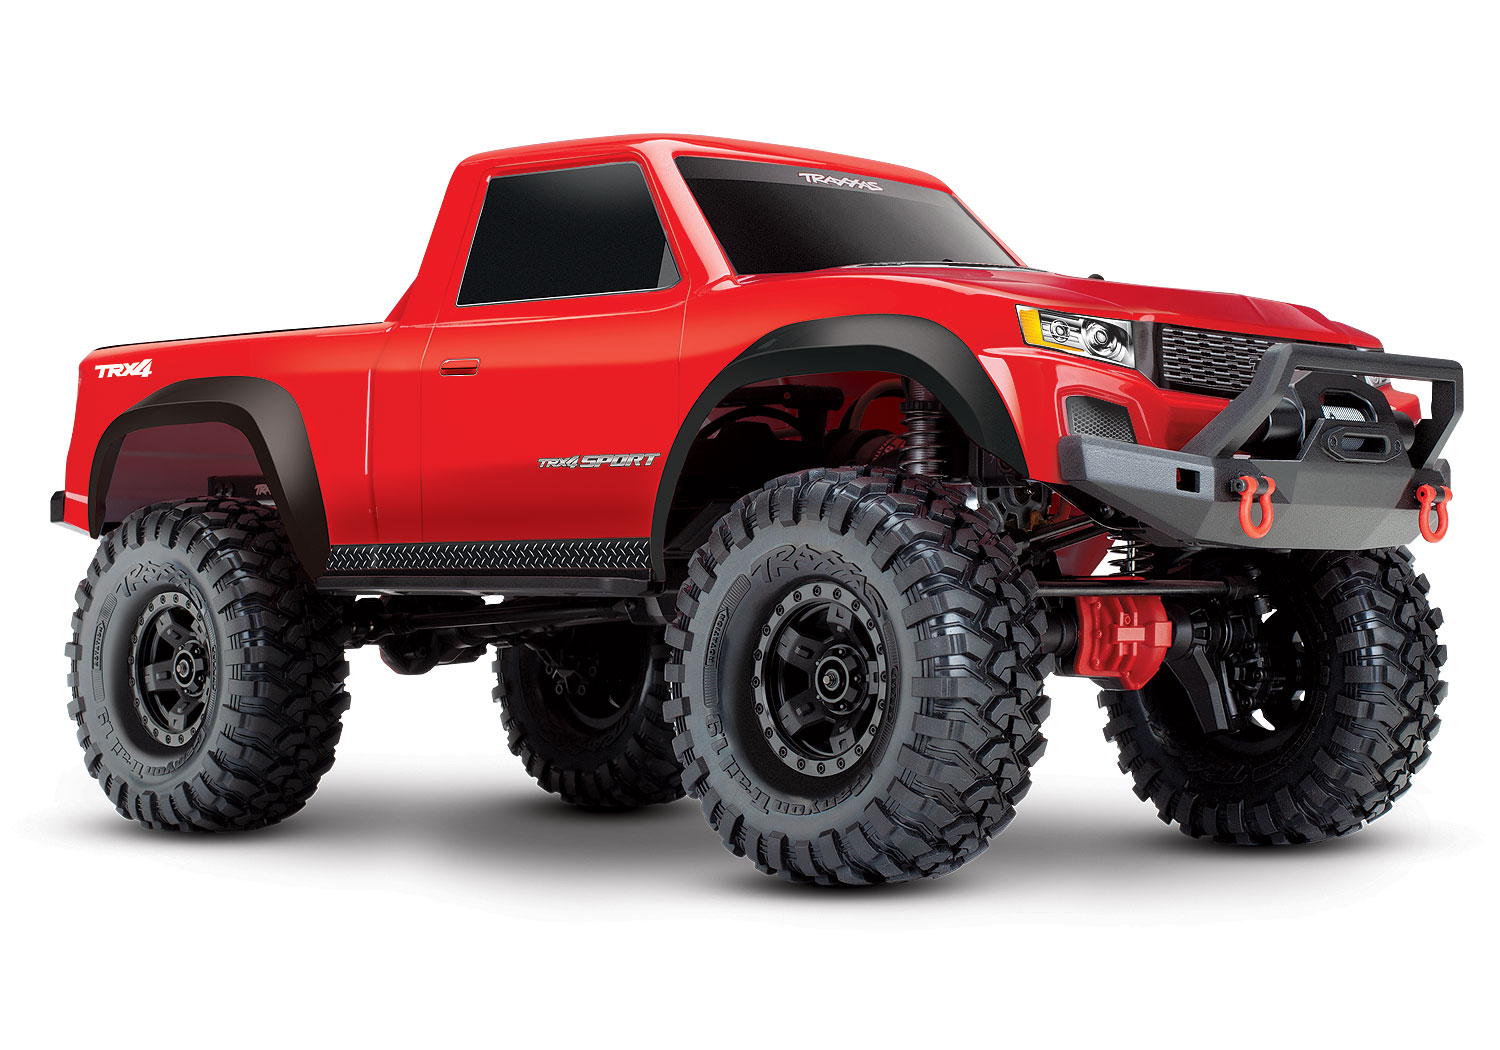 Pack Promo Traxxas TRX-4 Sport Pick Up Rouge TQi RTR + Chargeur TRAXXAS + Batterie Traxxas Lipo 3S, P82024-4